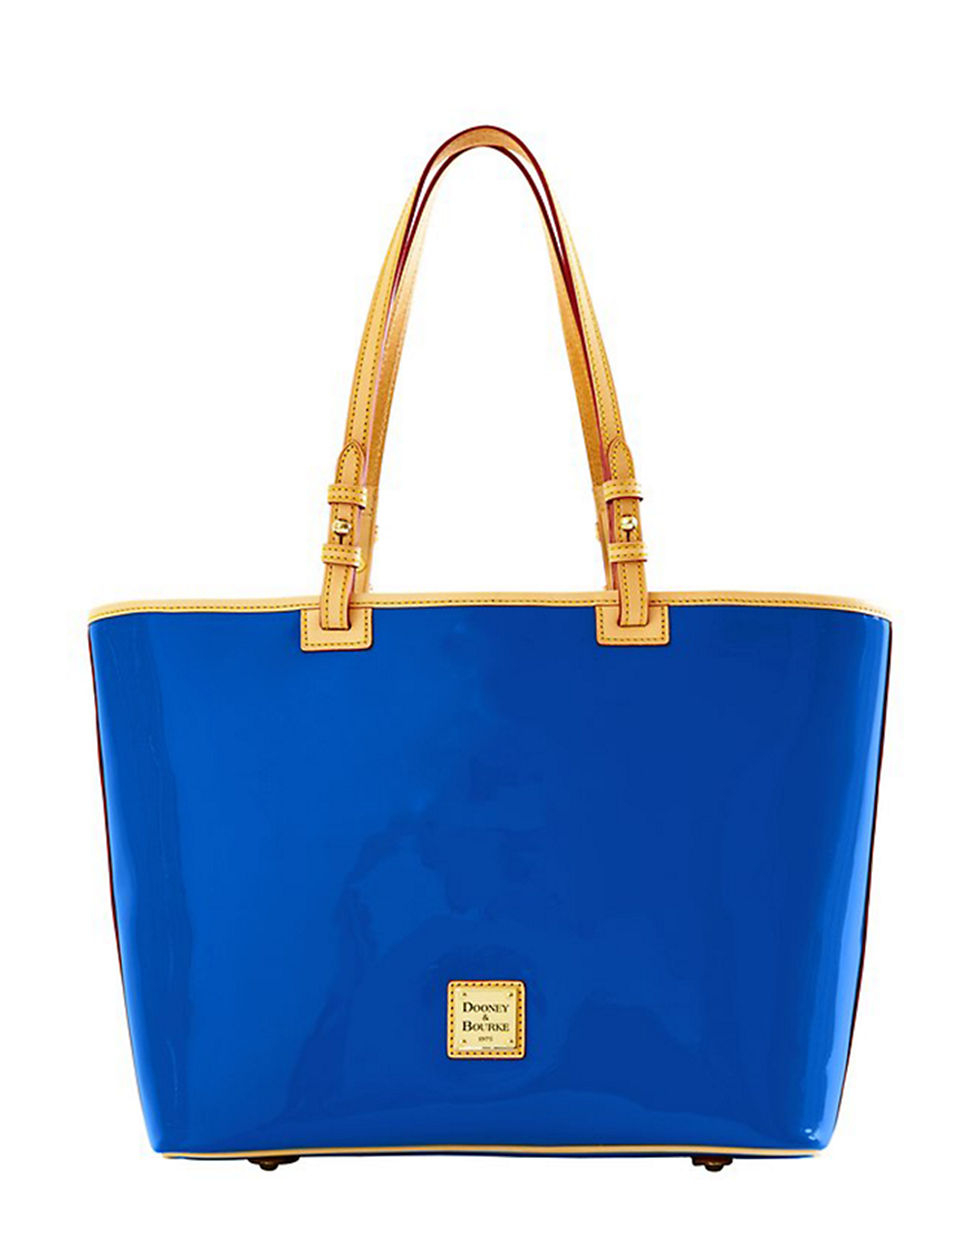 dooney bourke patent leather leisure tote bag in blue lyst